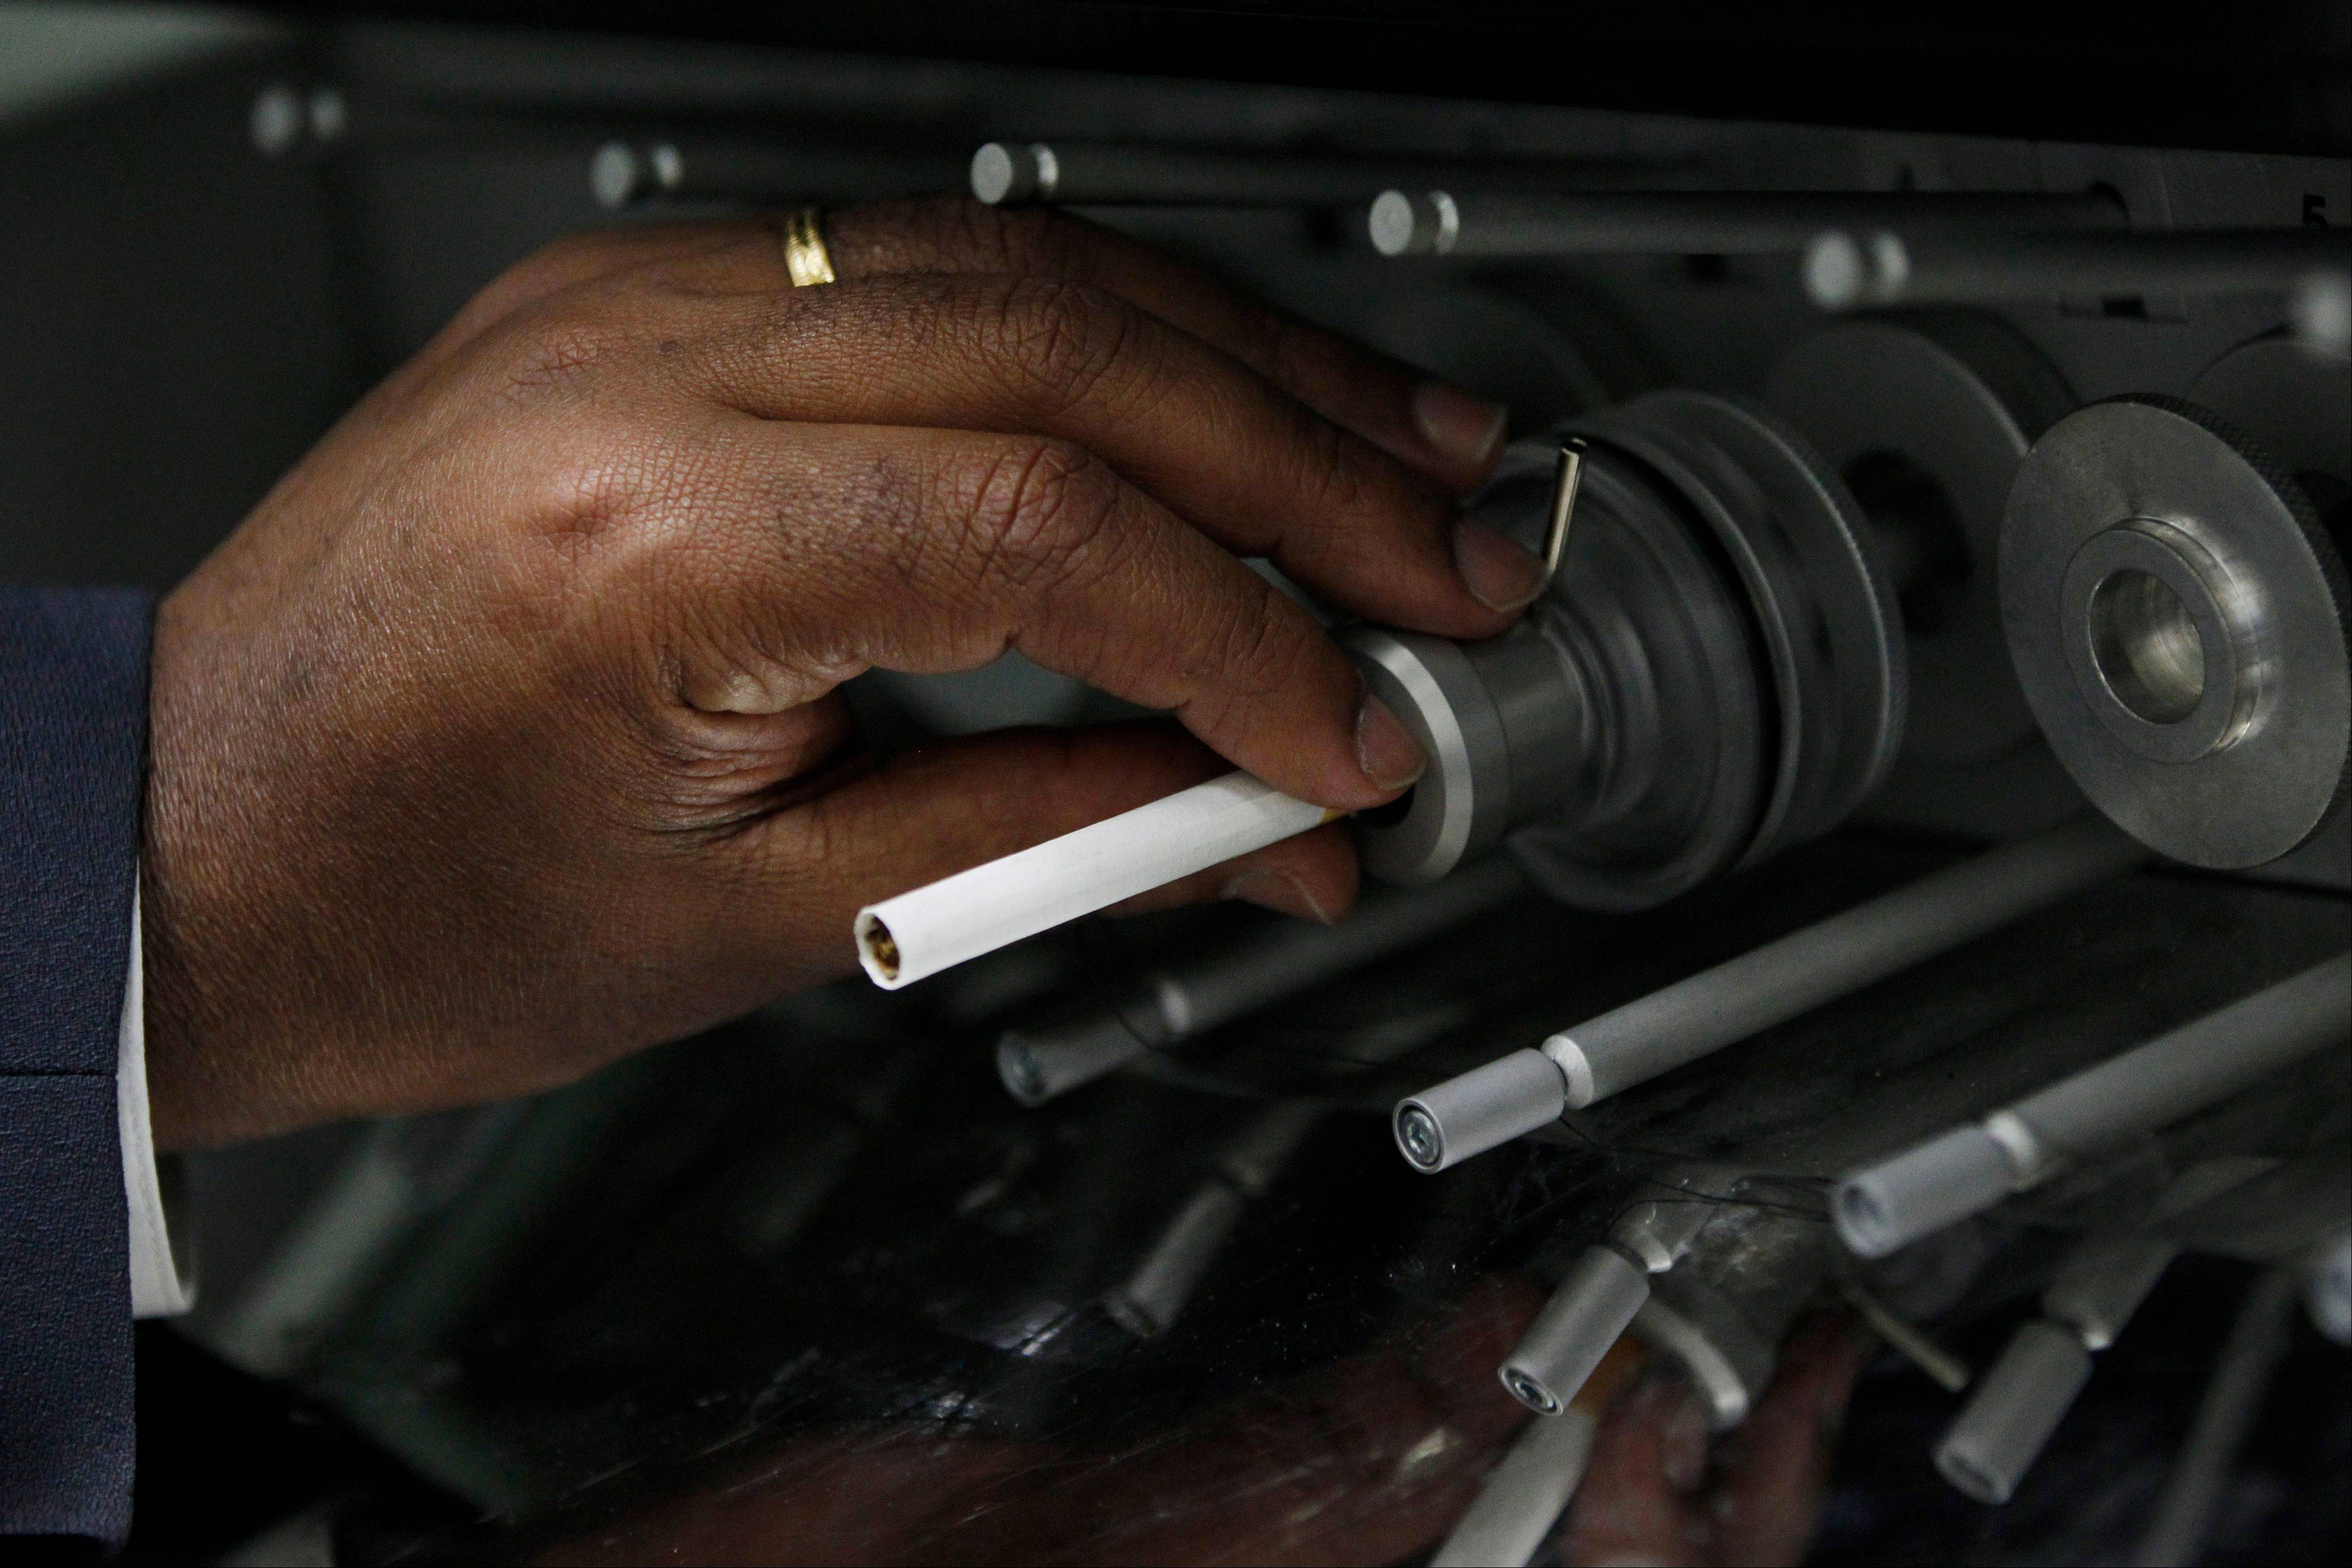 A cigarette is positioned in a mainstream linear 20-port smoking machine at the U.S. Department of Treasury's Alcohol and Tobacco Tax and Trade Bureau laboratory, in Beltsville, Md. The Alcohol and Tobacco Tax and Trade Bureau, which collects taxes on booze and smokes and tells the companies that produce them how to do business, is one example of the specialized government offices threatened by Washingtonís current zeal for cost-cutting.